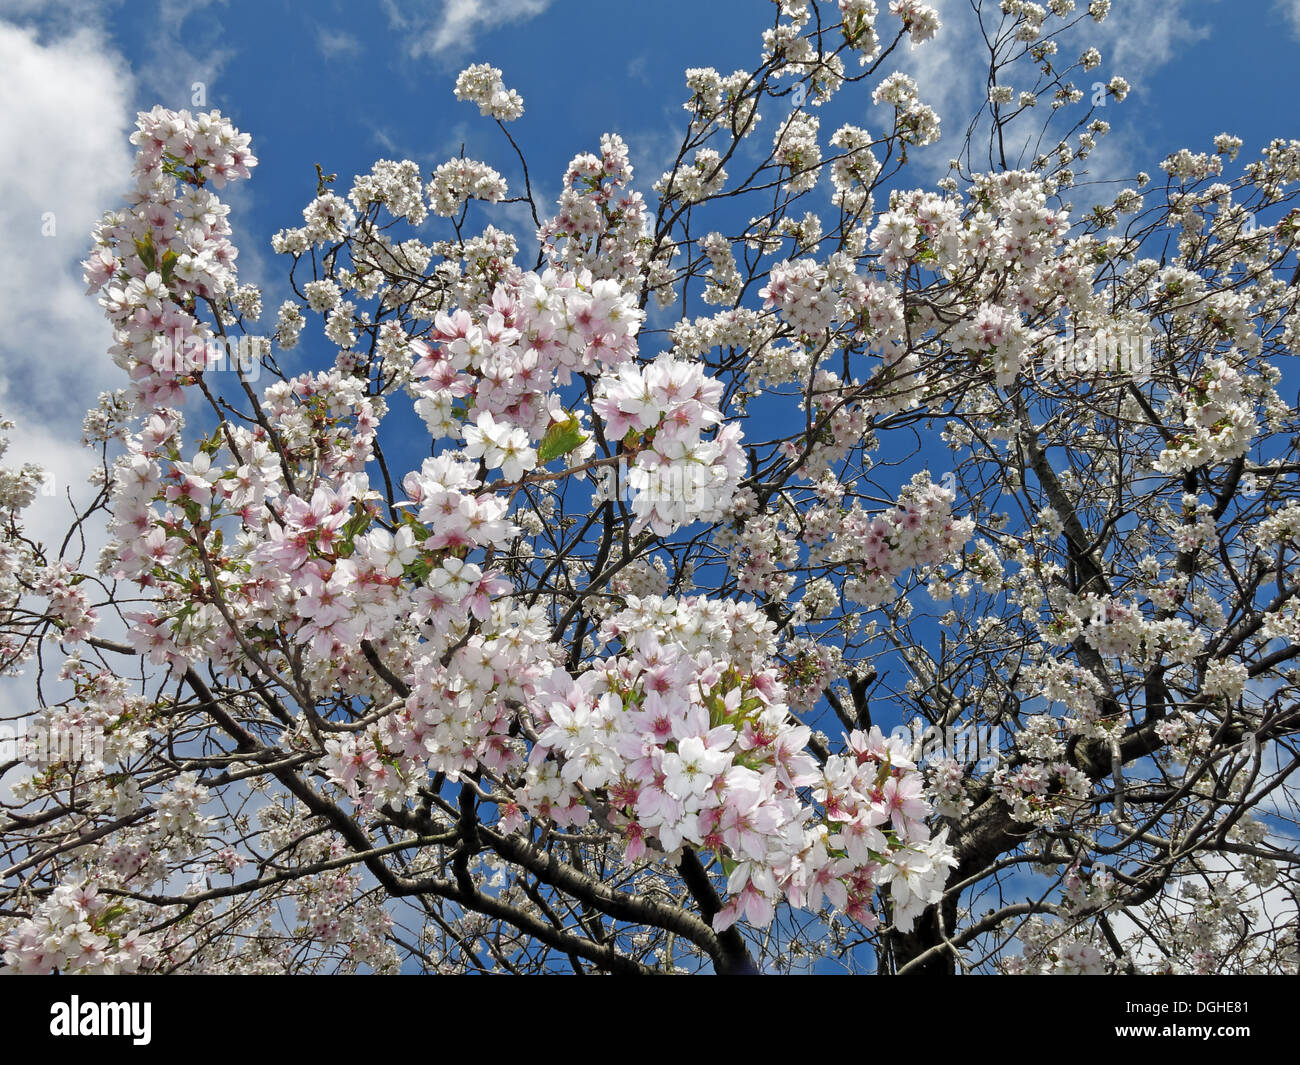 Signs of spring New creme white apple / cherry Blossom flowers against a deep blue sky England Stock Photo